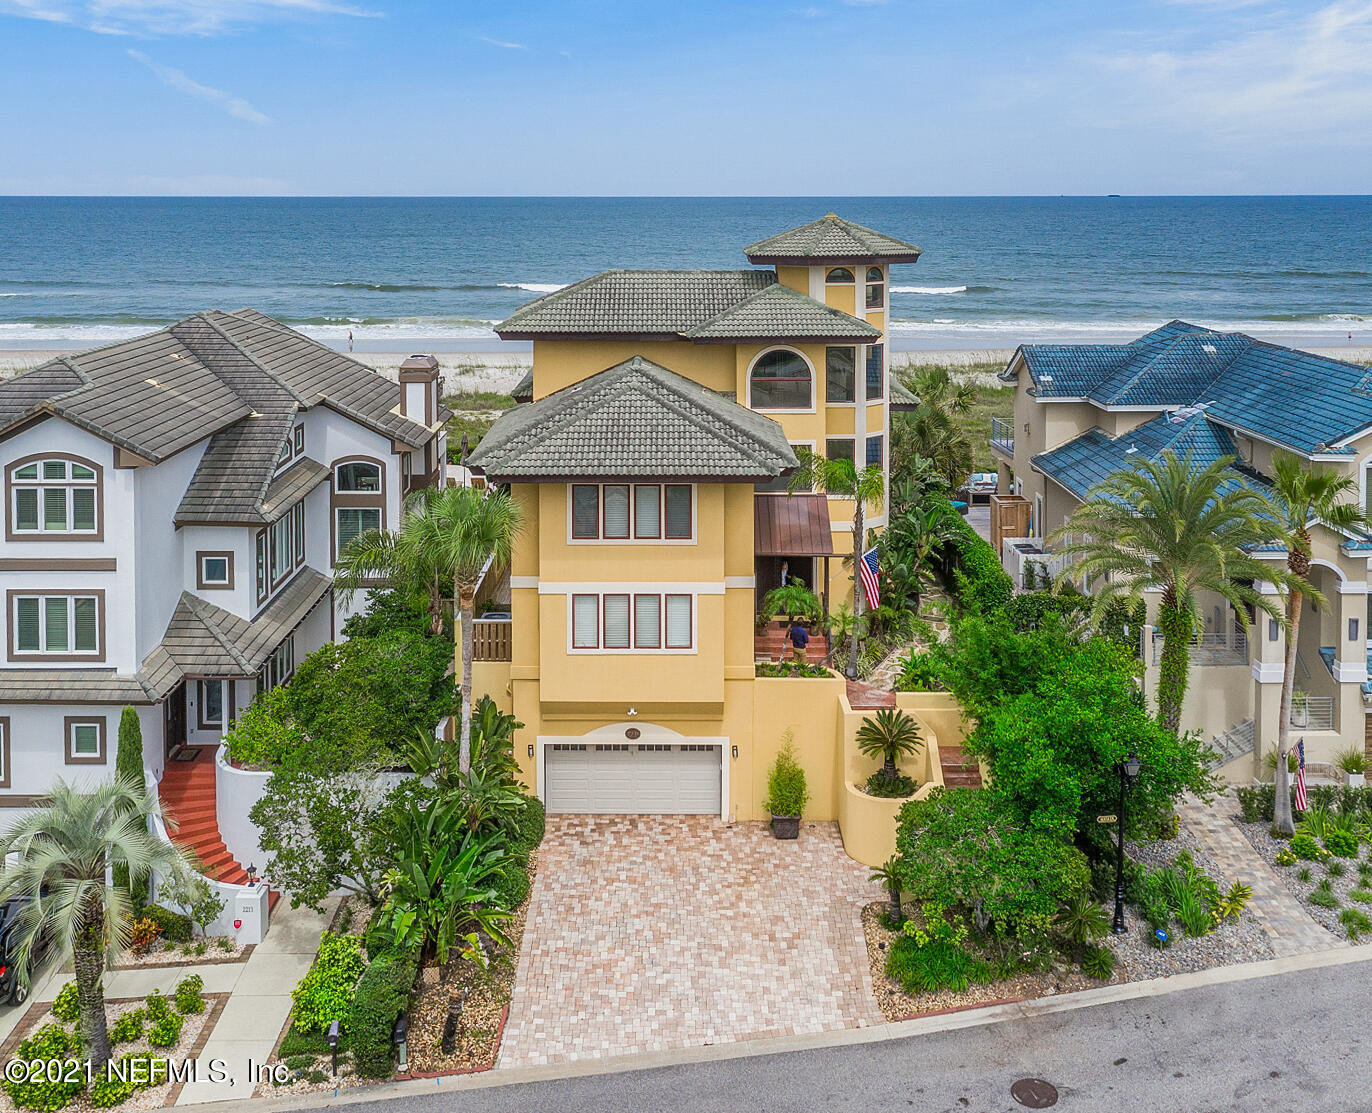 Envision yourself waking up everyday to the sound of crashing waves. Nestled behind the gates of Tiffany by the Sea in one of the most secluded locations of Atlantic Beach, this architectural tour-de-force offers features and amenities that most can only dream of. With 180-degree ocean views from almost every room in this home and direct beach access from your back deck, you can live everyday as if you were on an extended vacation. As you enter the courtyard, you find yourself moved by lush and meticulously maintained landscaping that blends a tropical vibe with complete privacy. This elegant home generously offers functional living and entertaining space for a large household. Schedule a showing now so you can start living your oceanfront dream tomorrow.